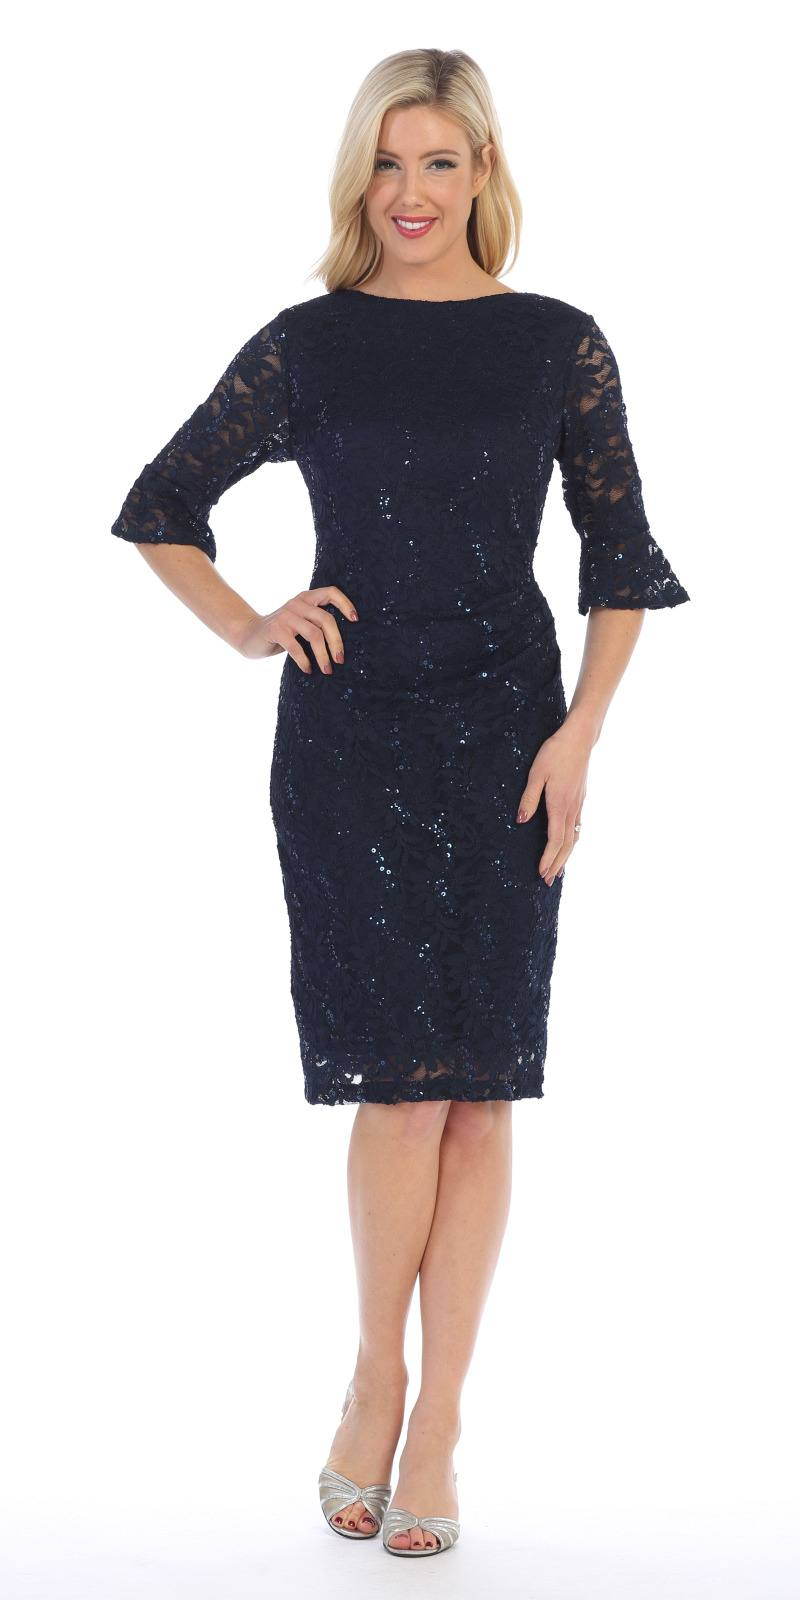 Short Wedding Guest Dress With Three Quarter Sleeves Navy Blue